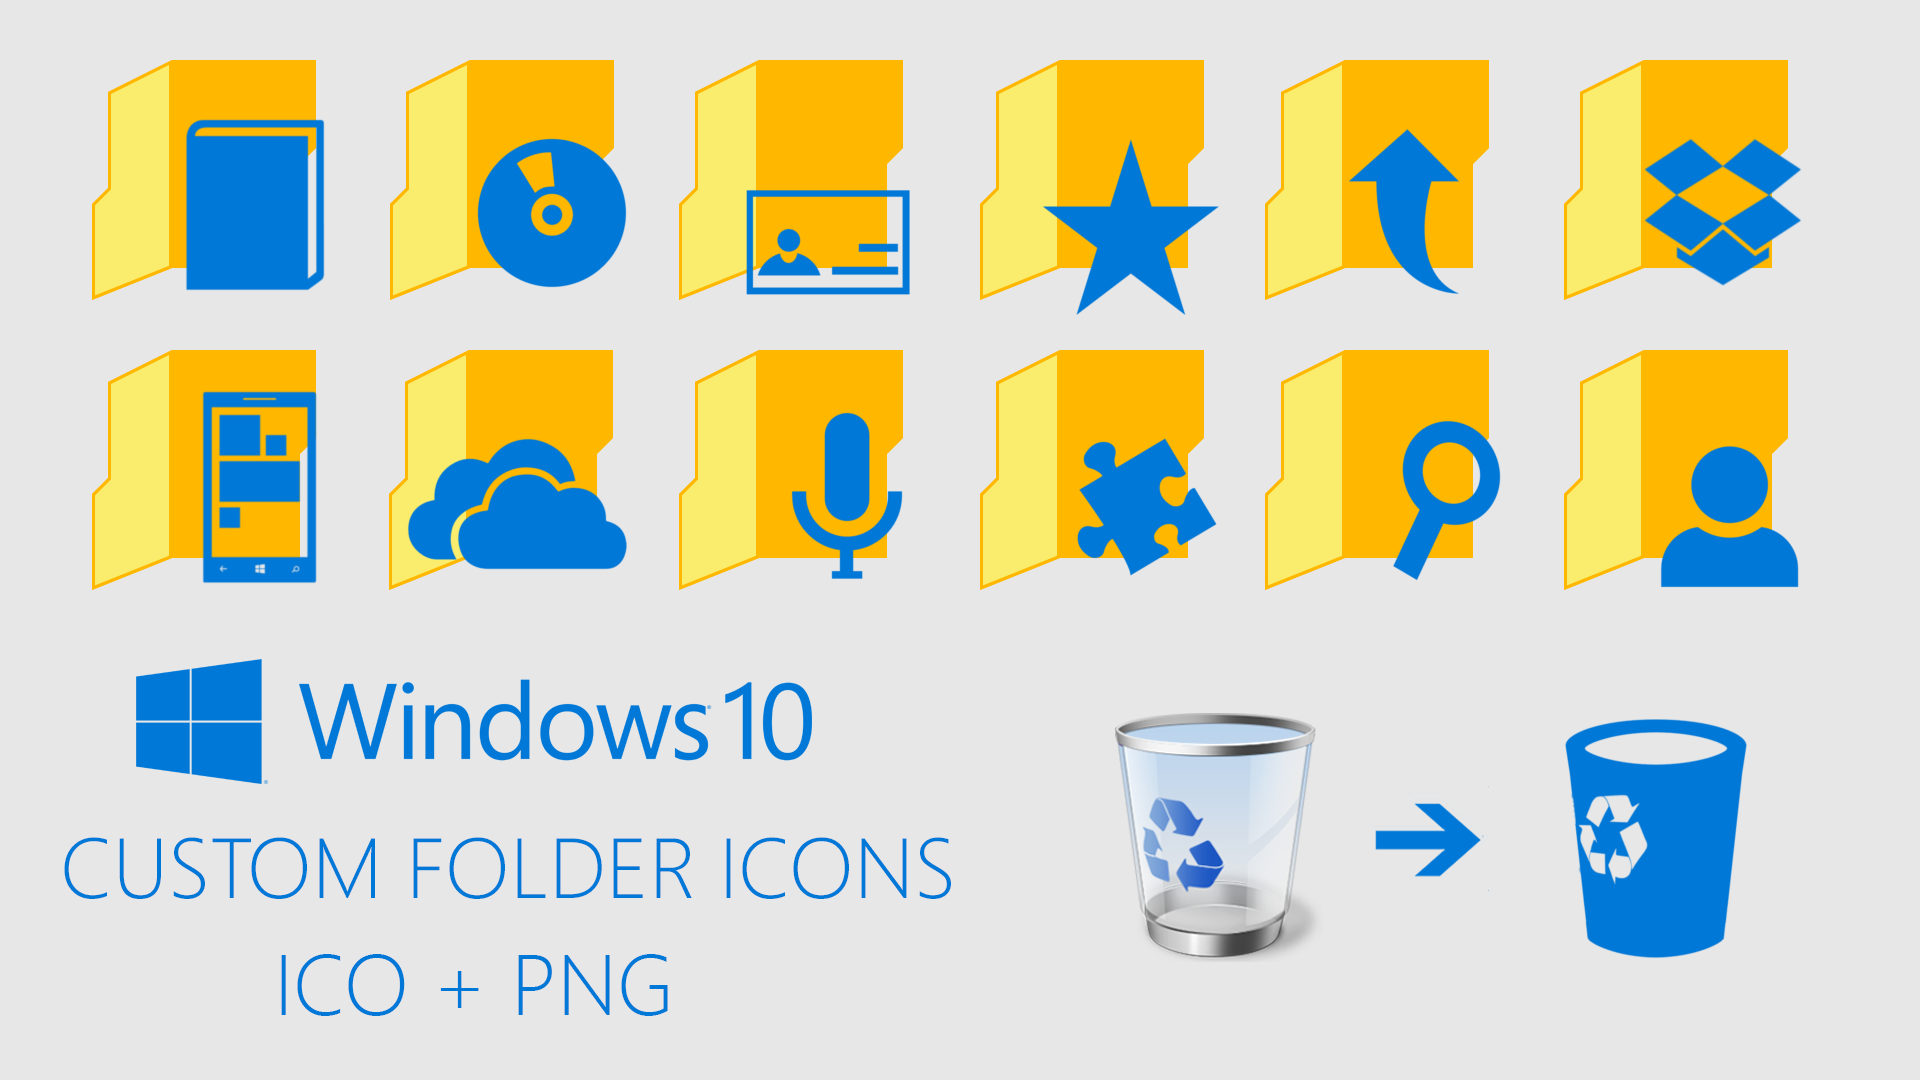 Windows 10 Custom Folder Icons By Davidvkimball On DeviantArt